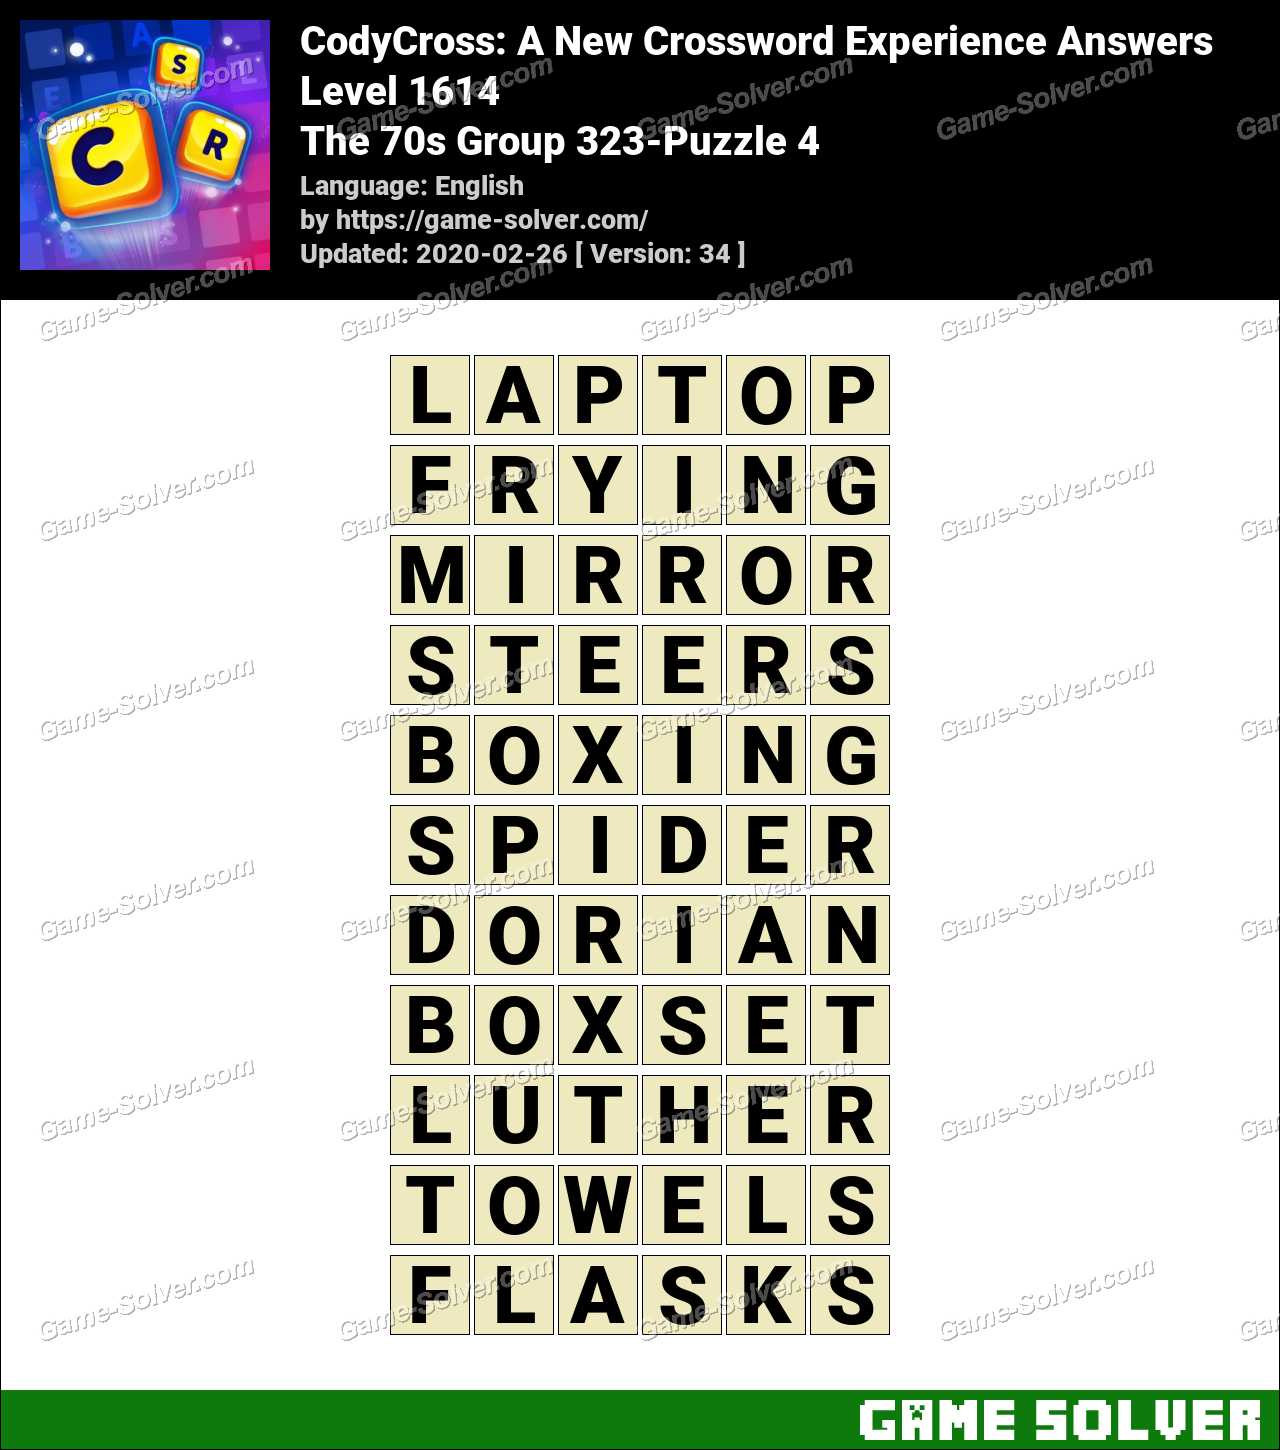 CodyCross The 70s Group 323-Puzzle 4 Answers